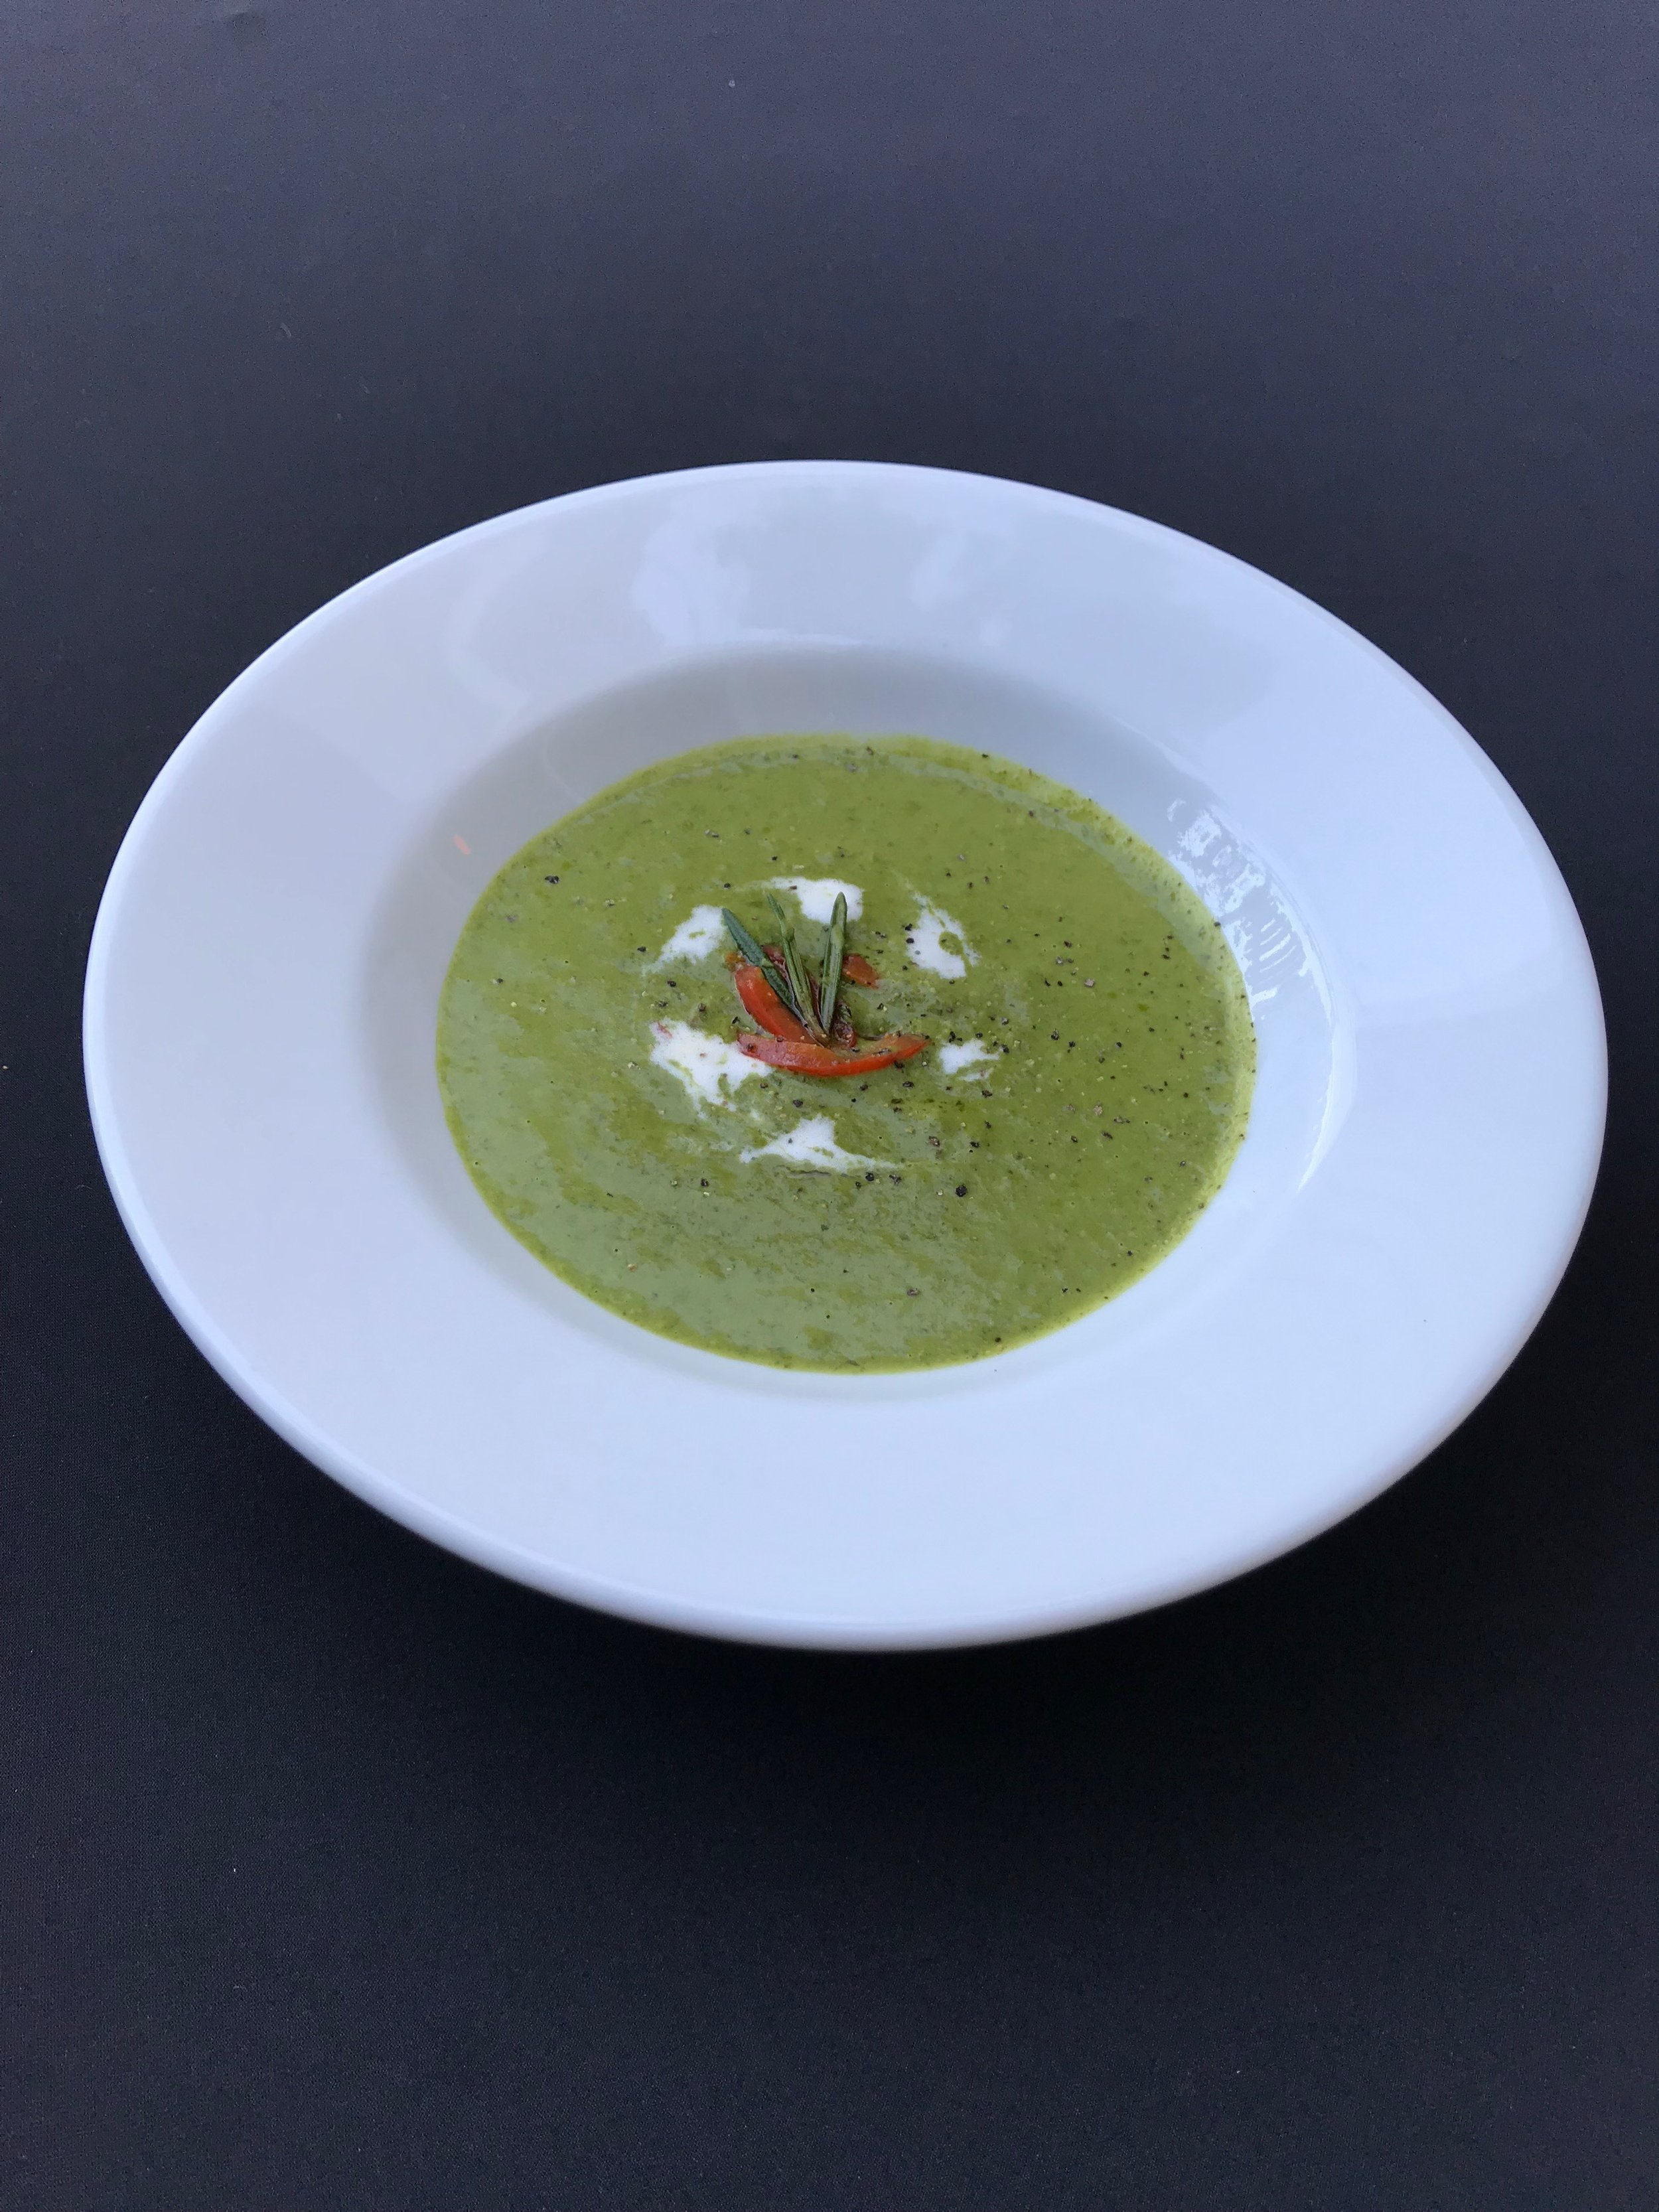 - Spinach & Rosemary SoupCreamy pureed soup with potato, chicken stock, onion, and rosemary, topped with creme fraiche